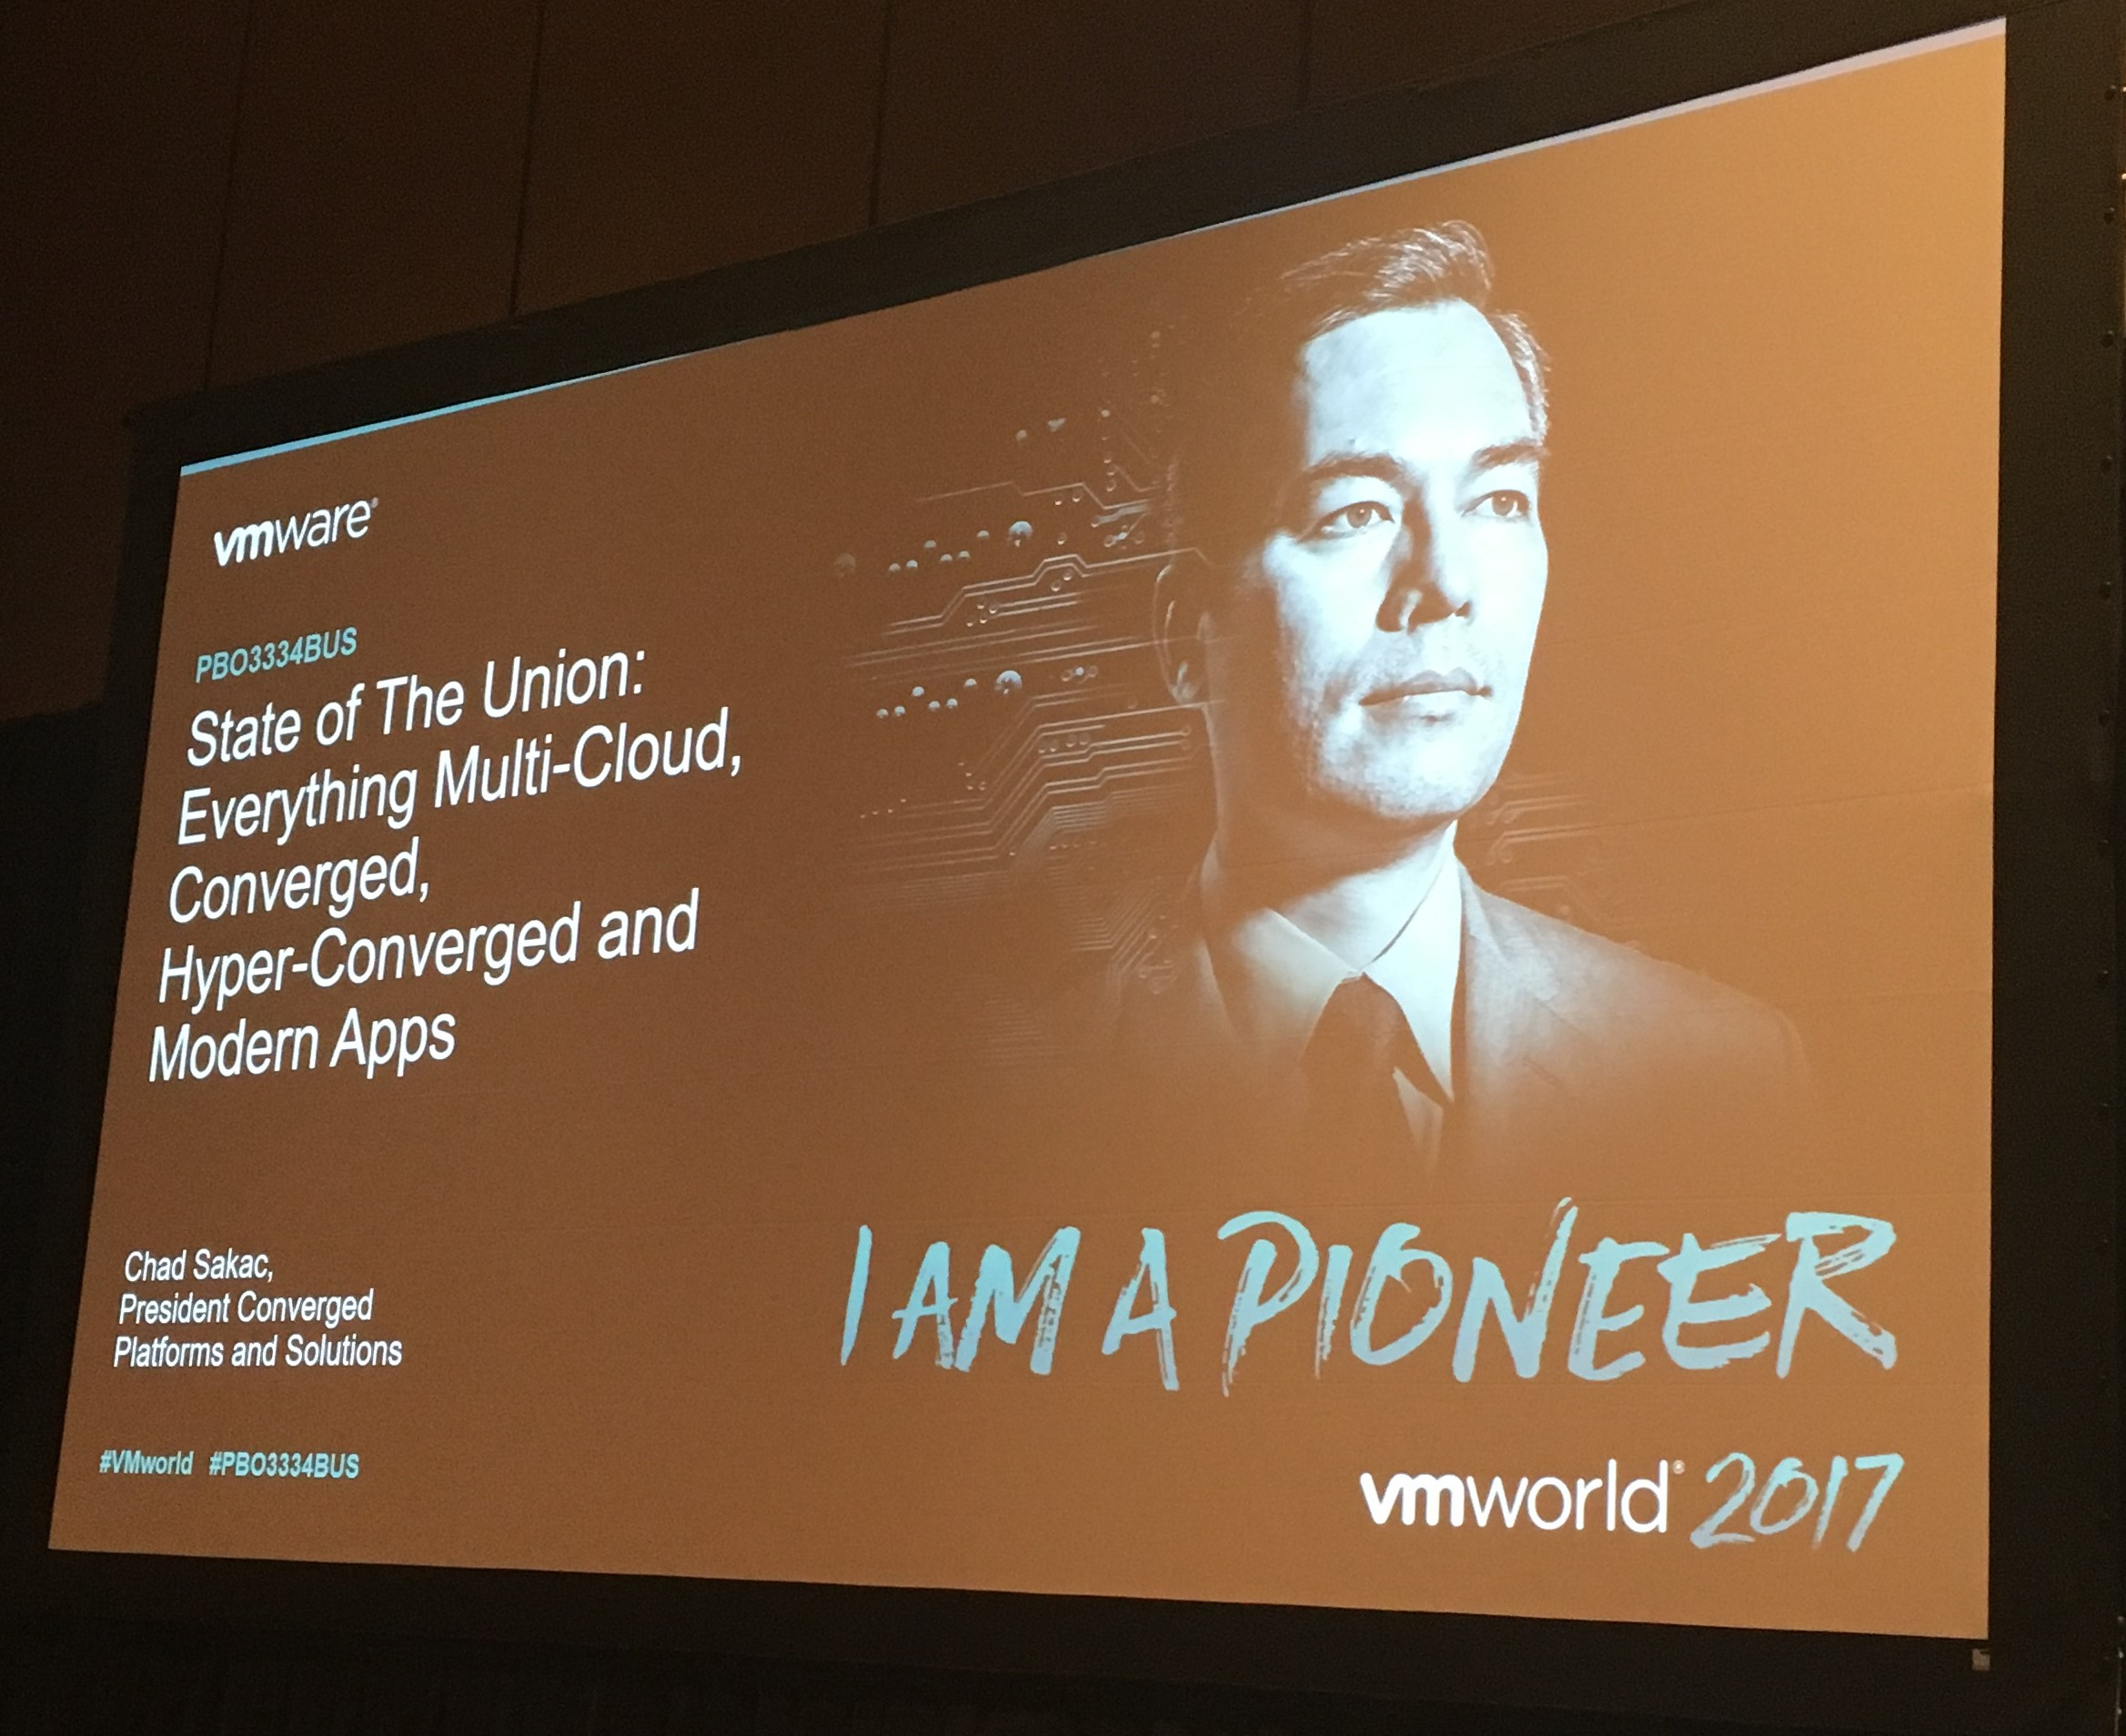 vmware – vmworld 2017 – pbo3334bus – state of the union: everything